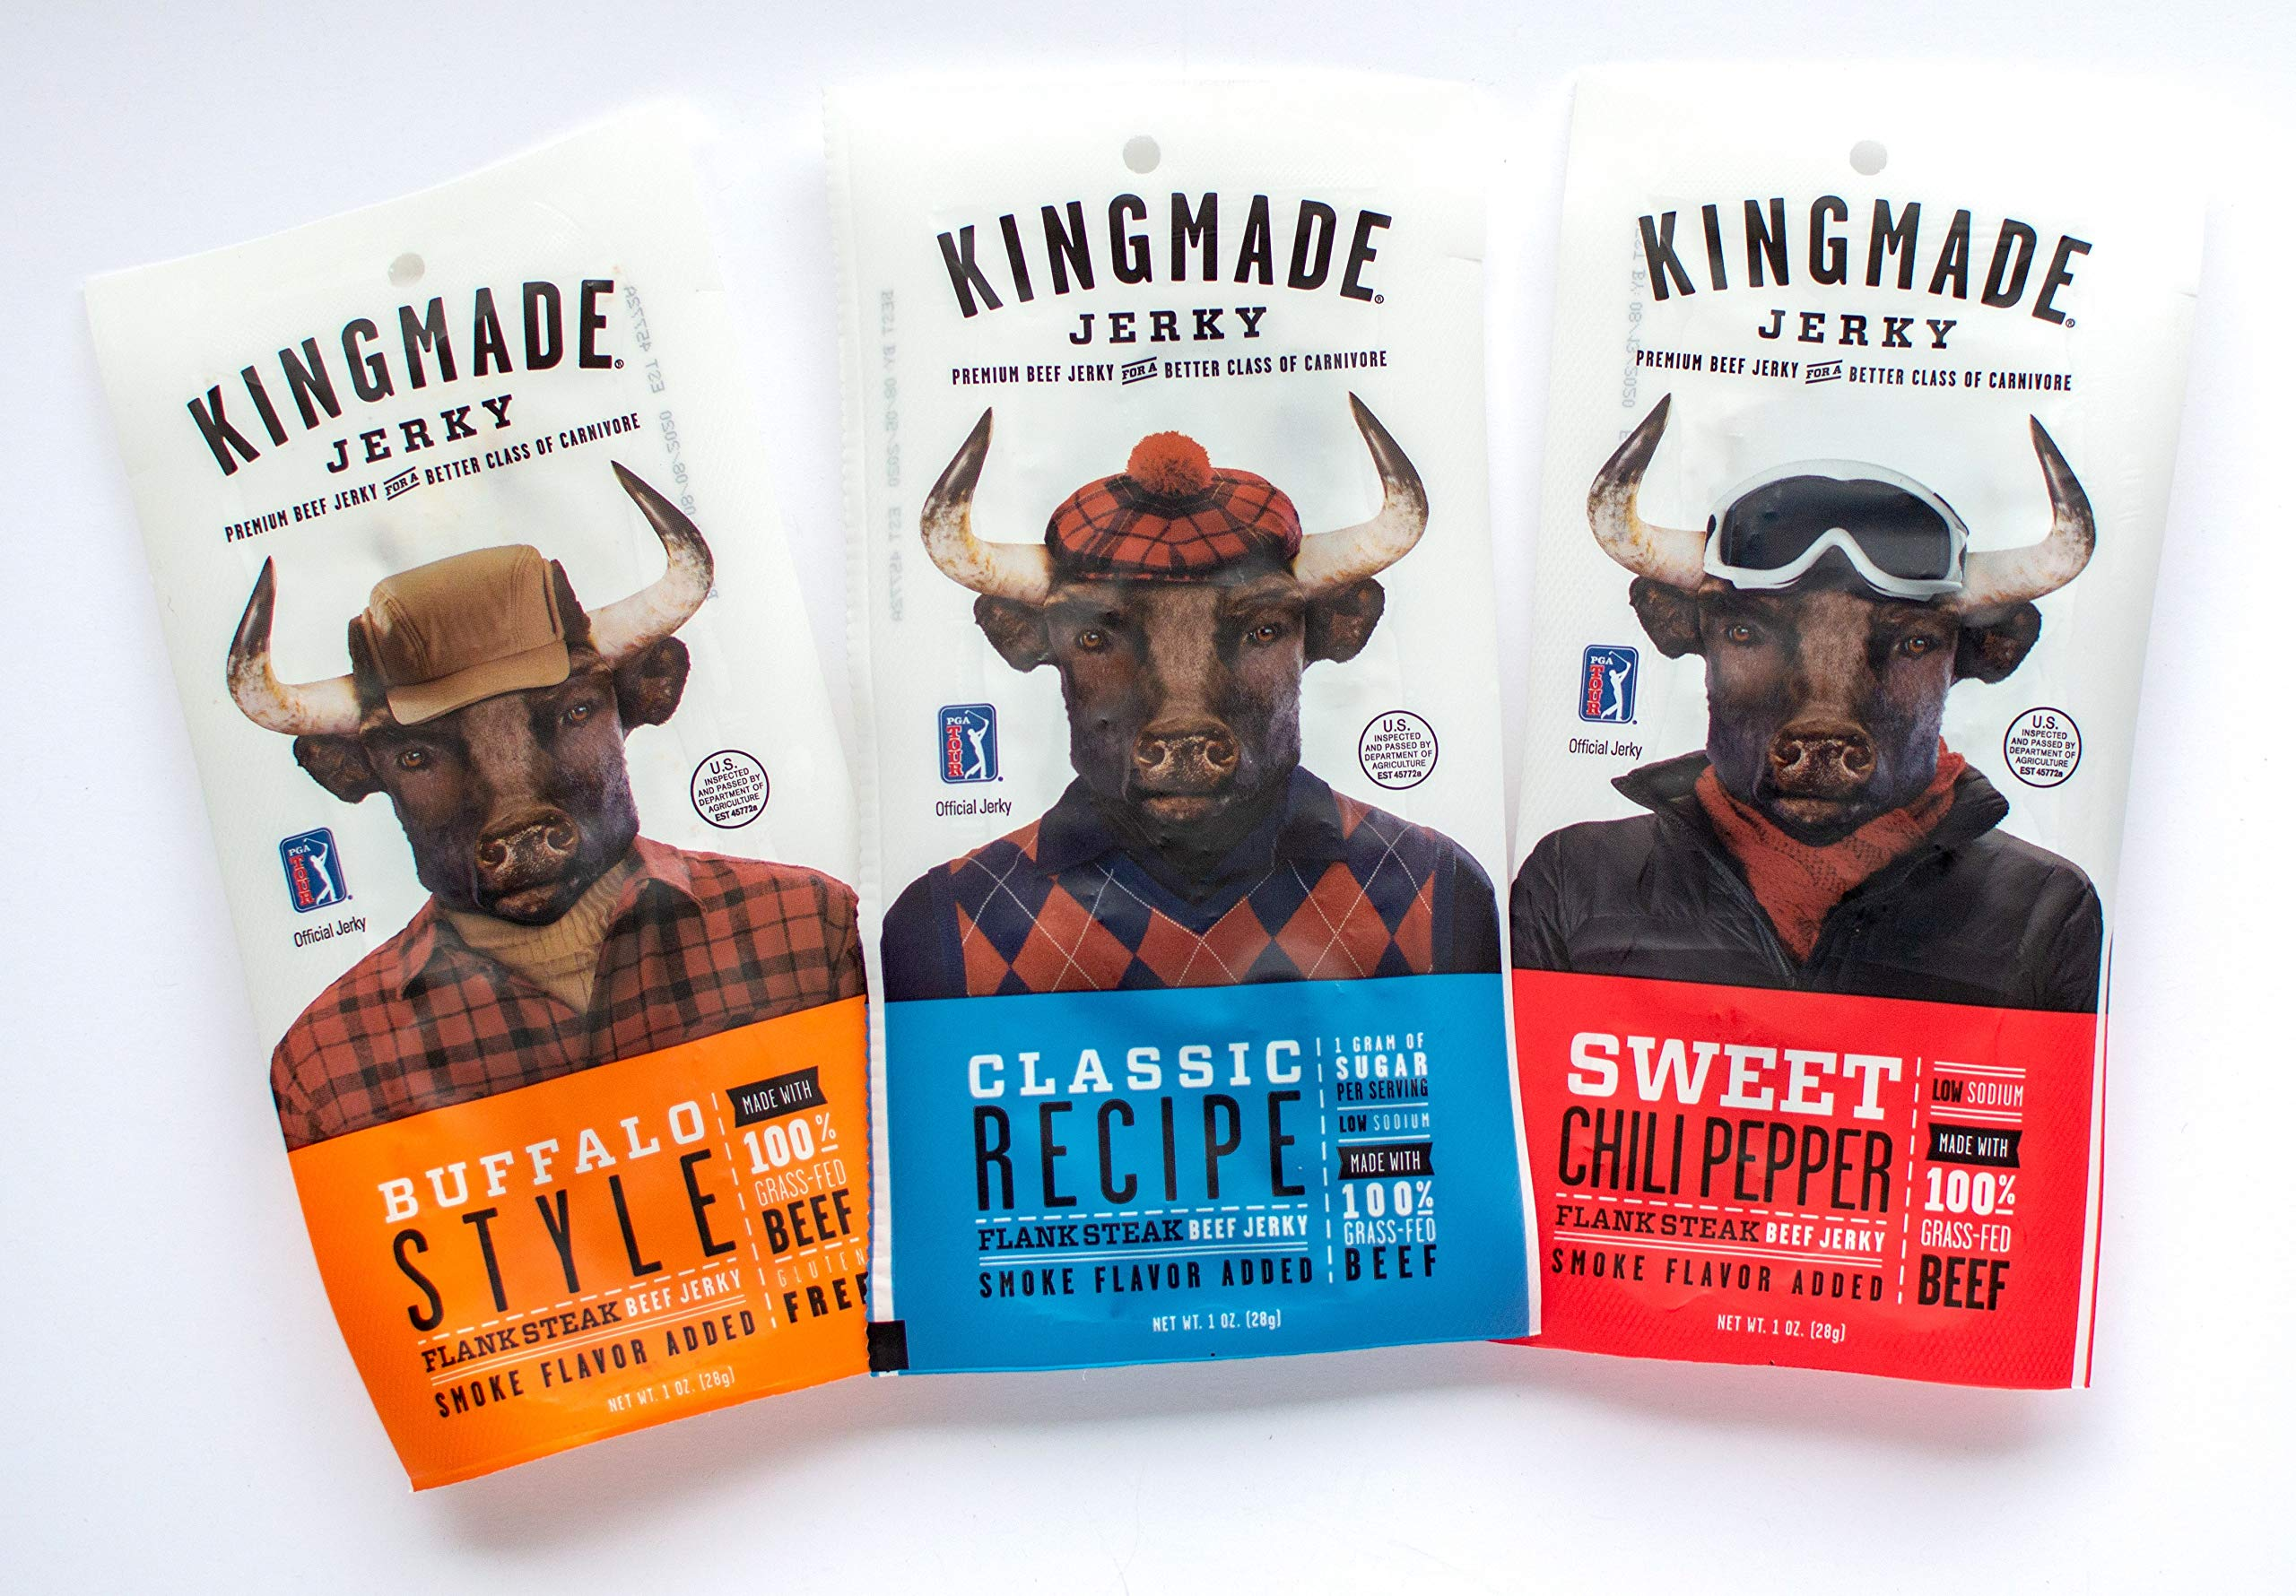 Kingmade Beef Jerky Variety Pack Premium Grass Fed Flank Steak Cuts, Gluten Free, Low Sugar & Sodium, No MSG Added, Natural Protein Snacks with No Nitrates & Nitrites (3 Pack)